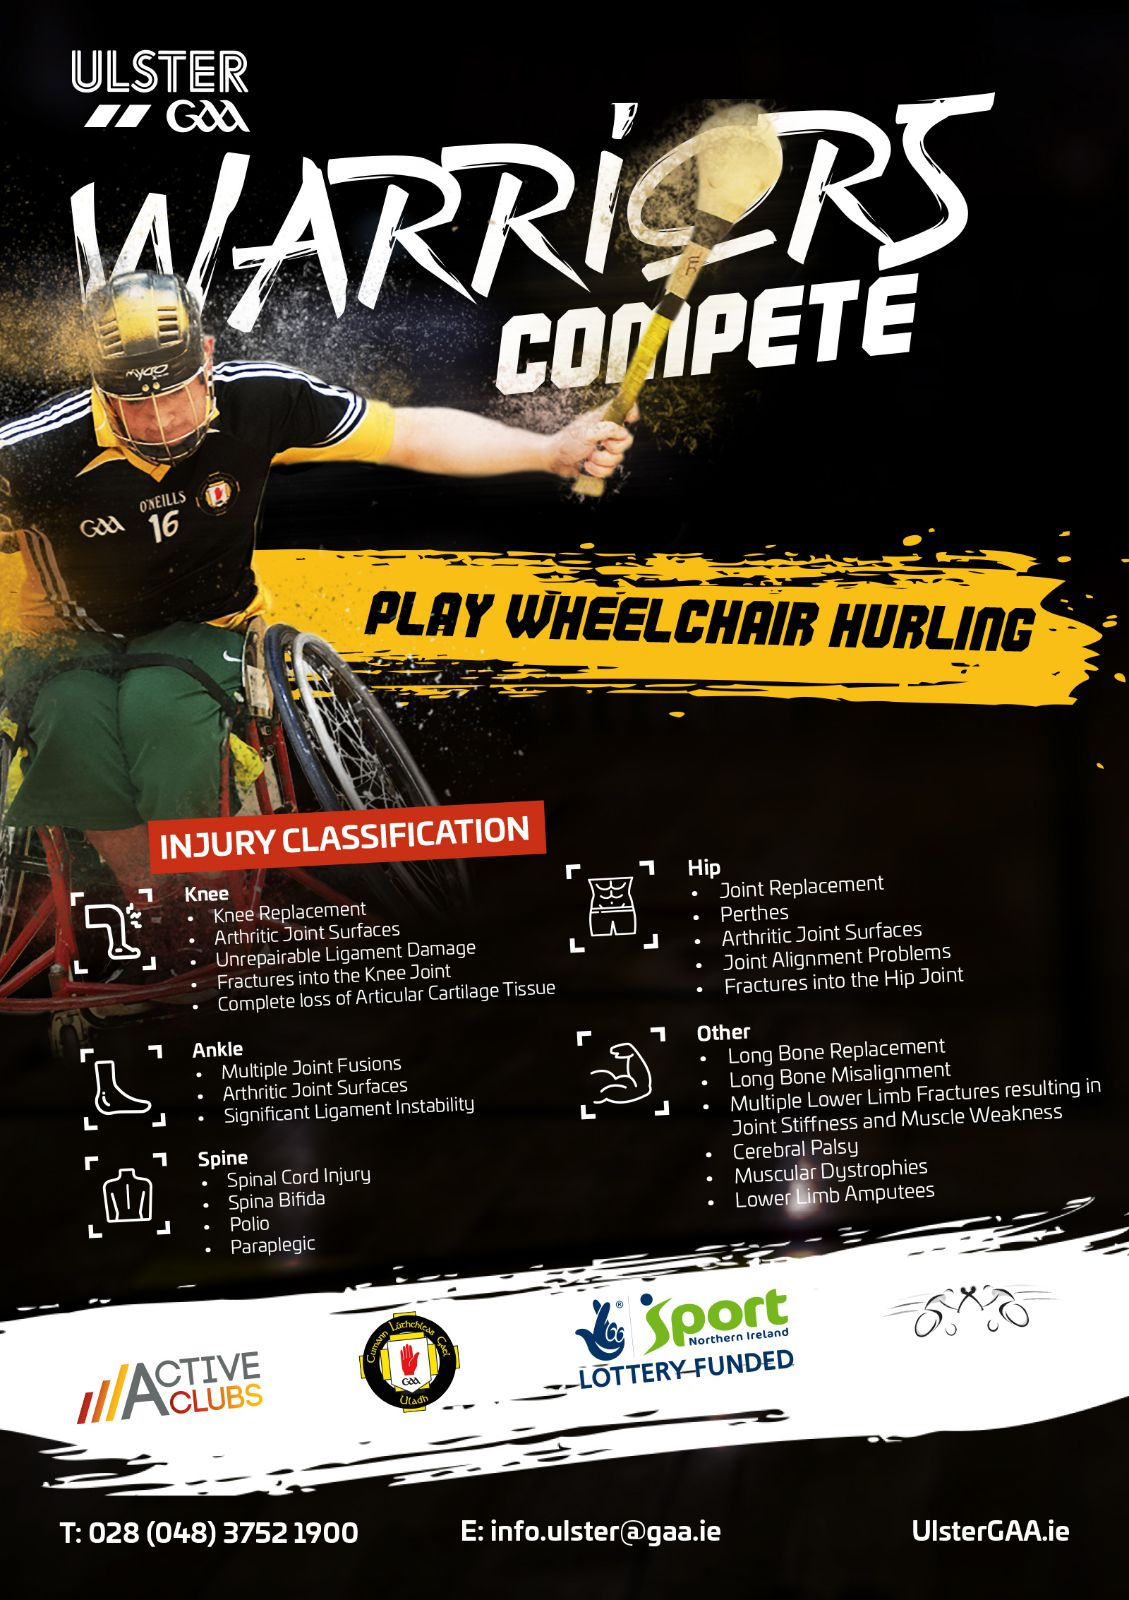 WHEELCHAIR HURLING COMES TO HEALY PARK